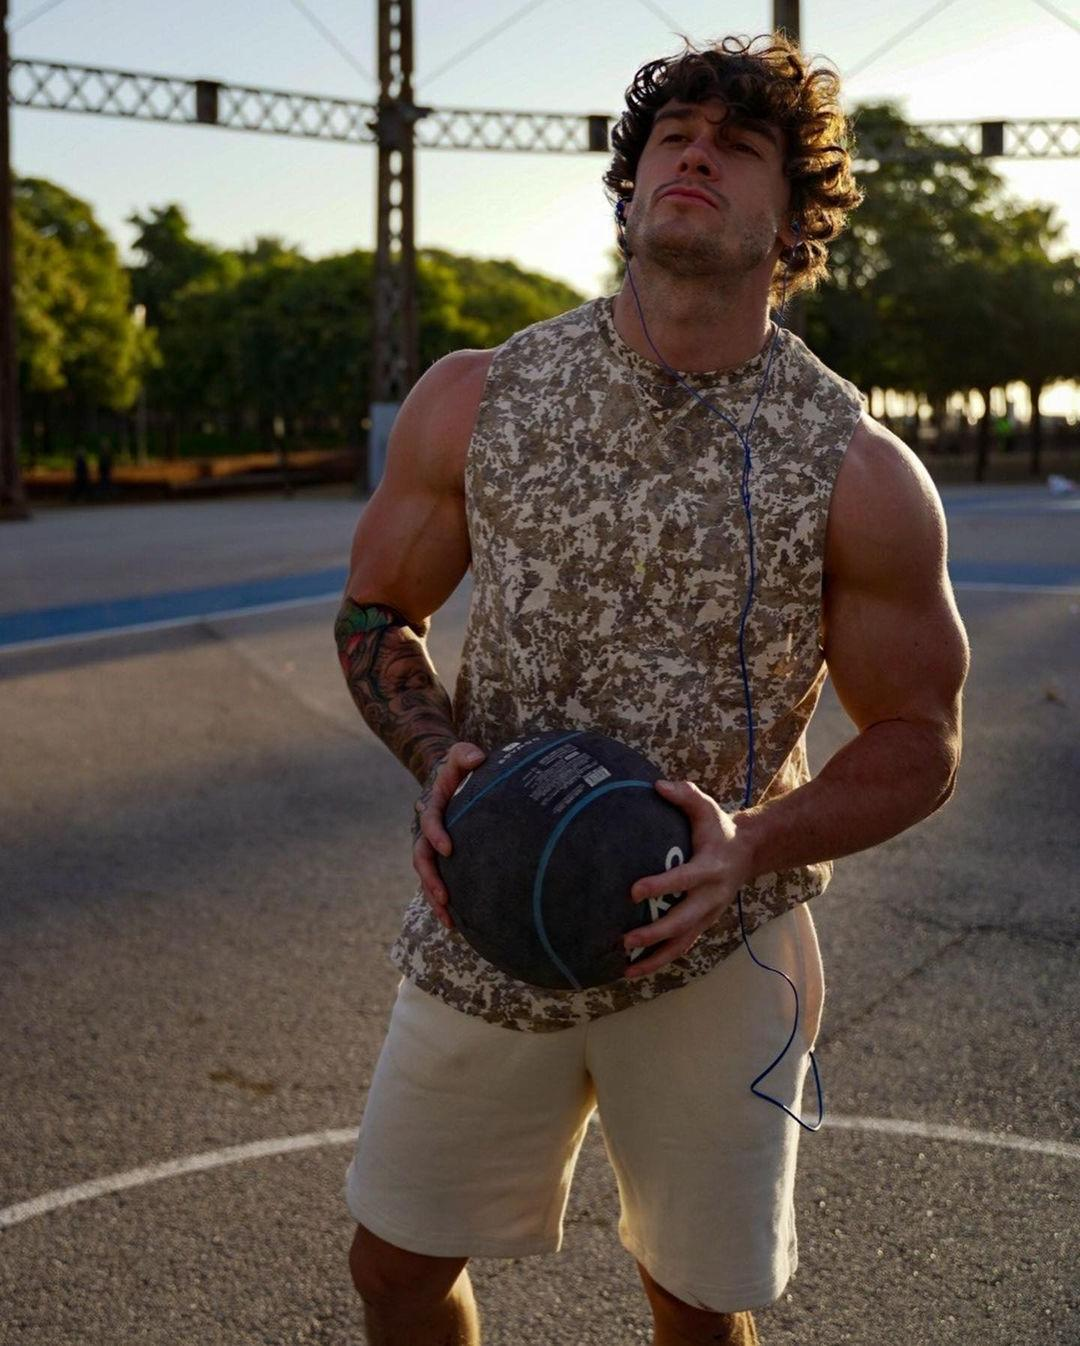 long-haired-strong-guys-owen-harrison-big-biceps-hot-basketball-players